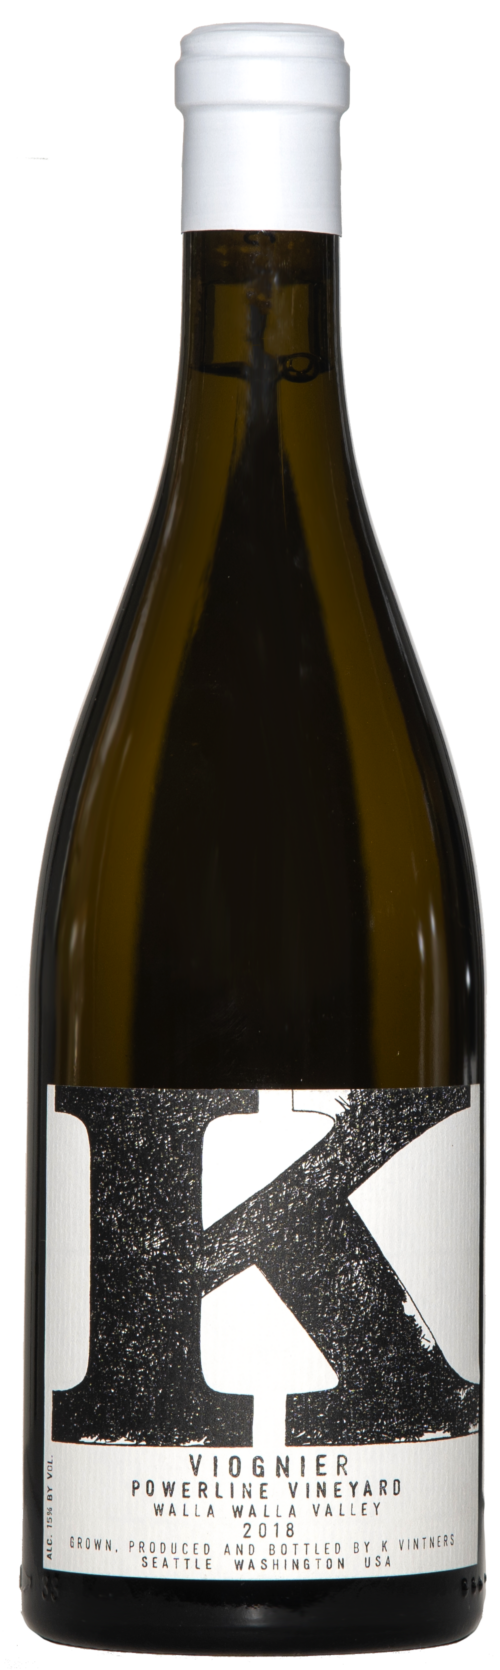 A brown bottle of wine with white wine inside. A white capsule and white label with black text and large K on it.